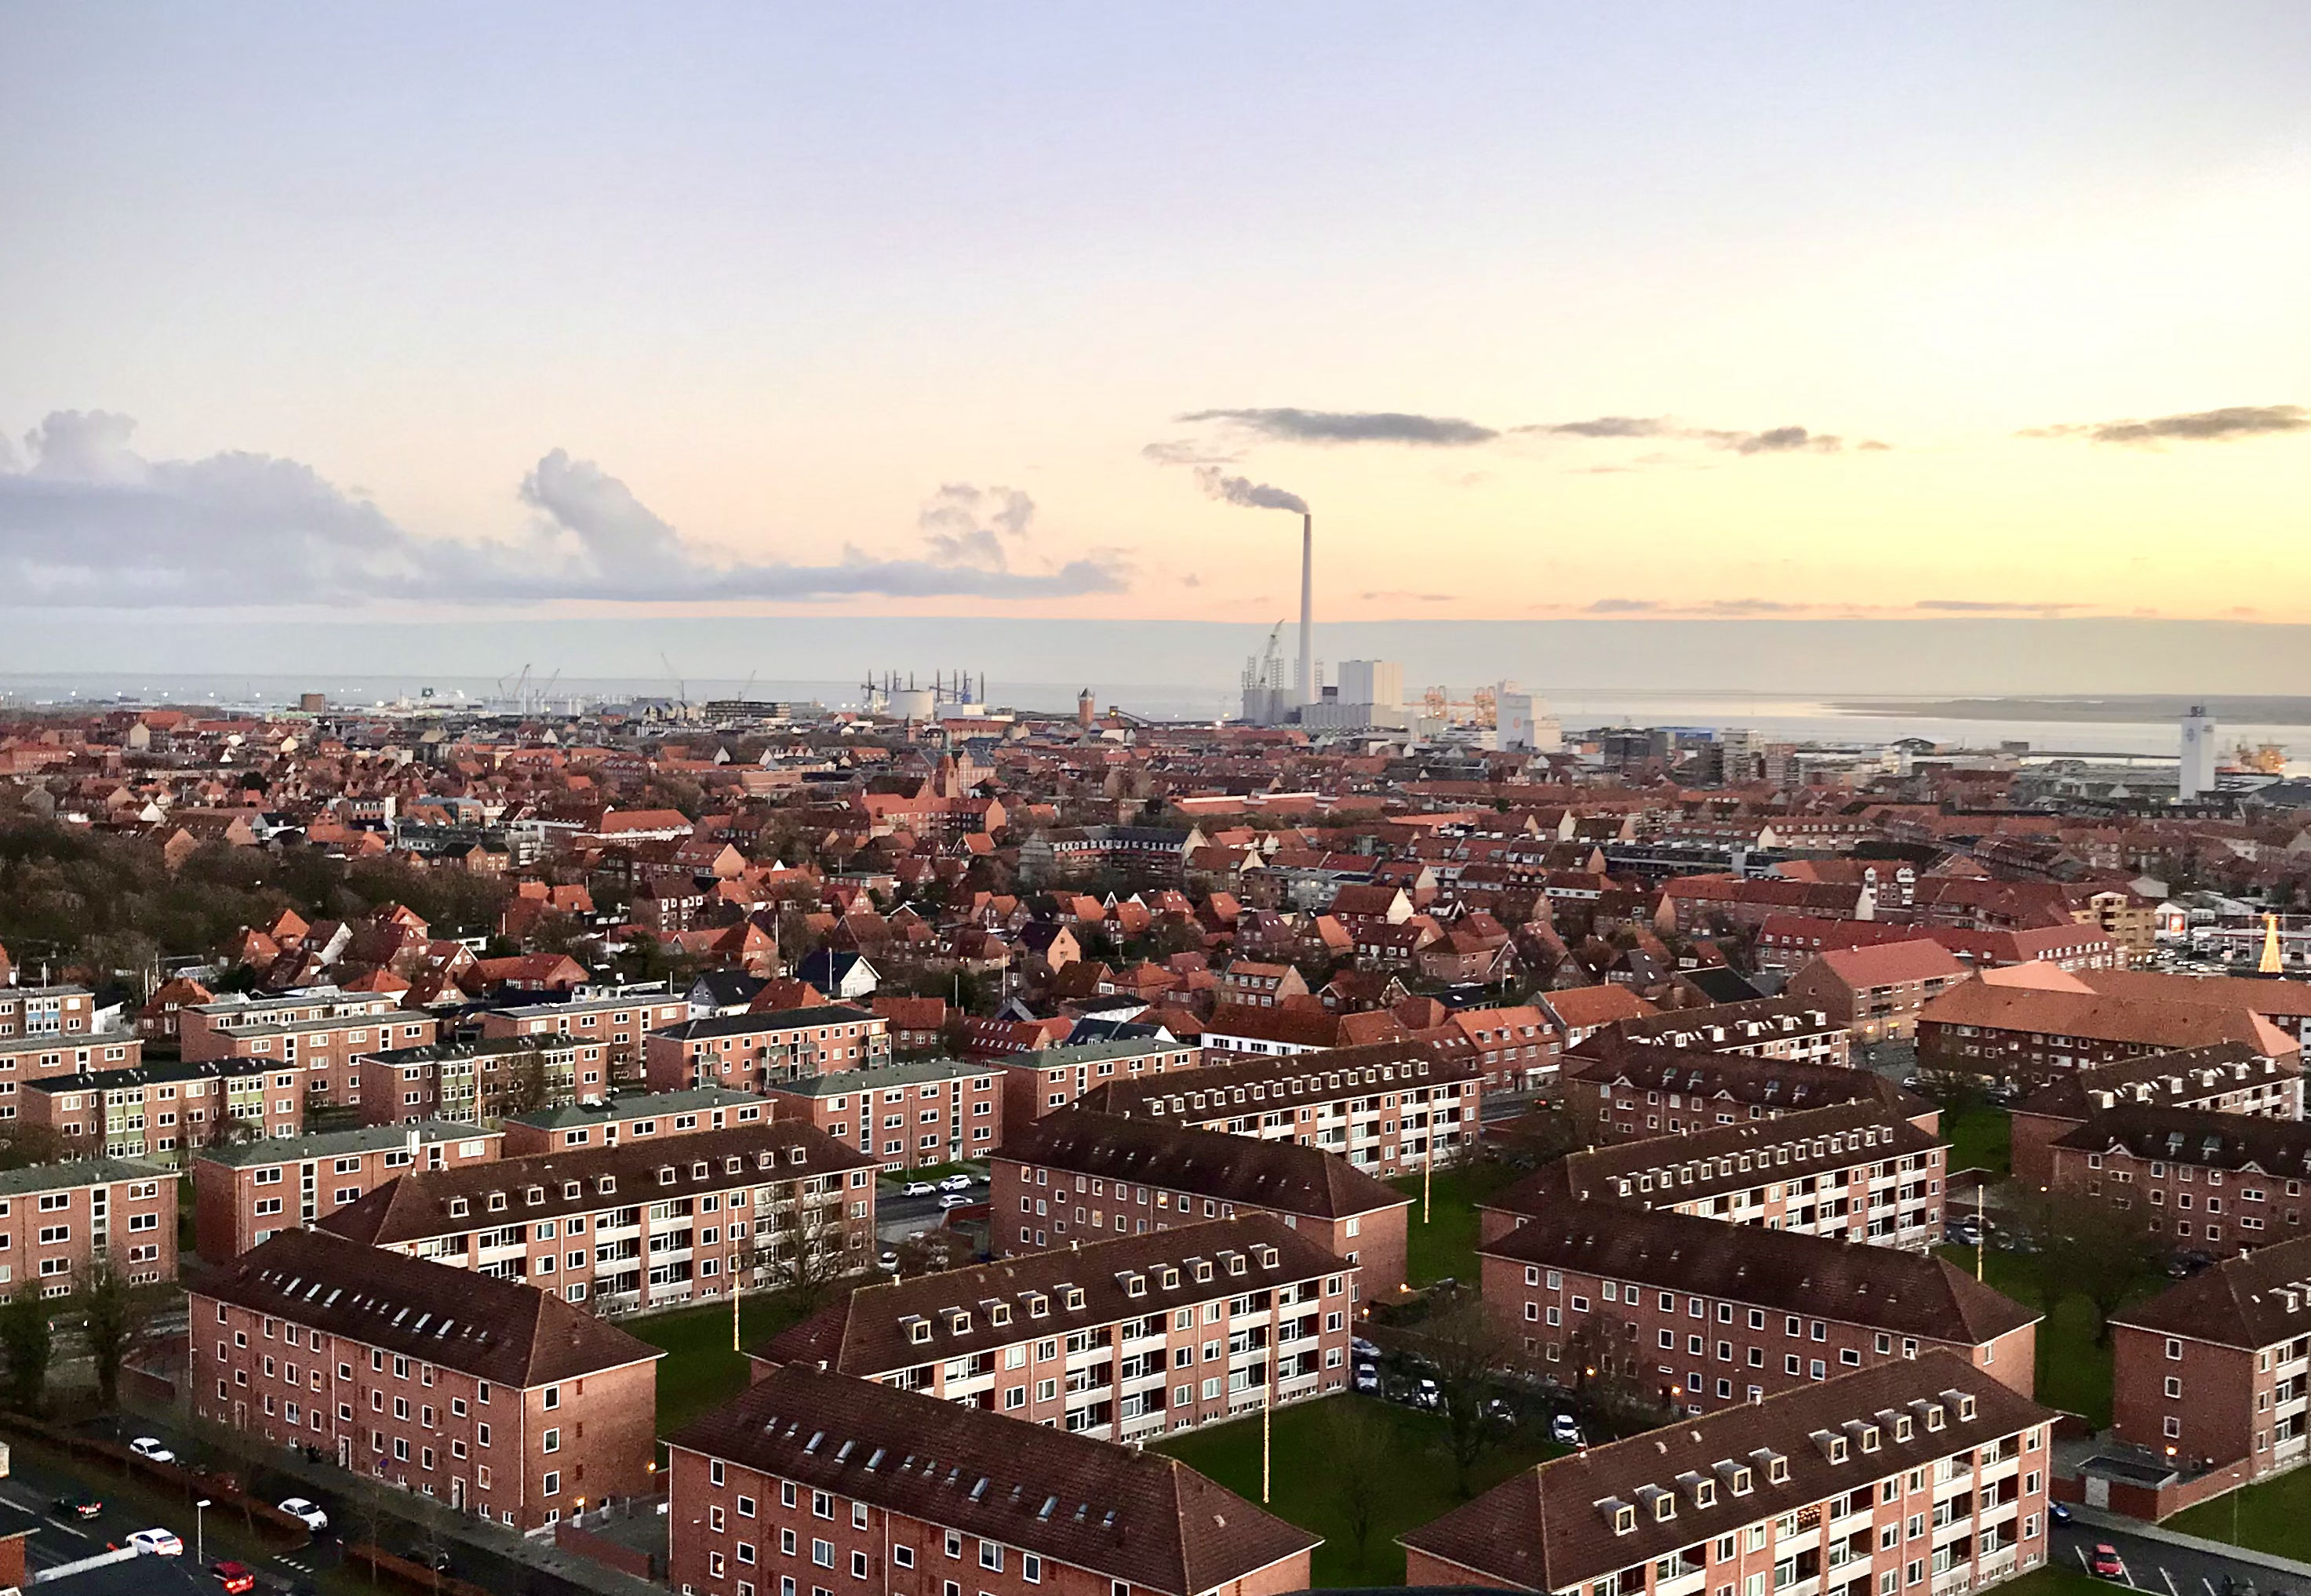 The View over Esbjerg City